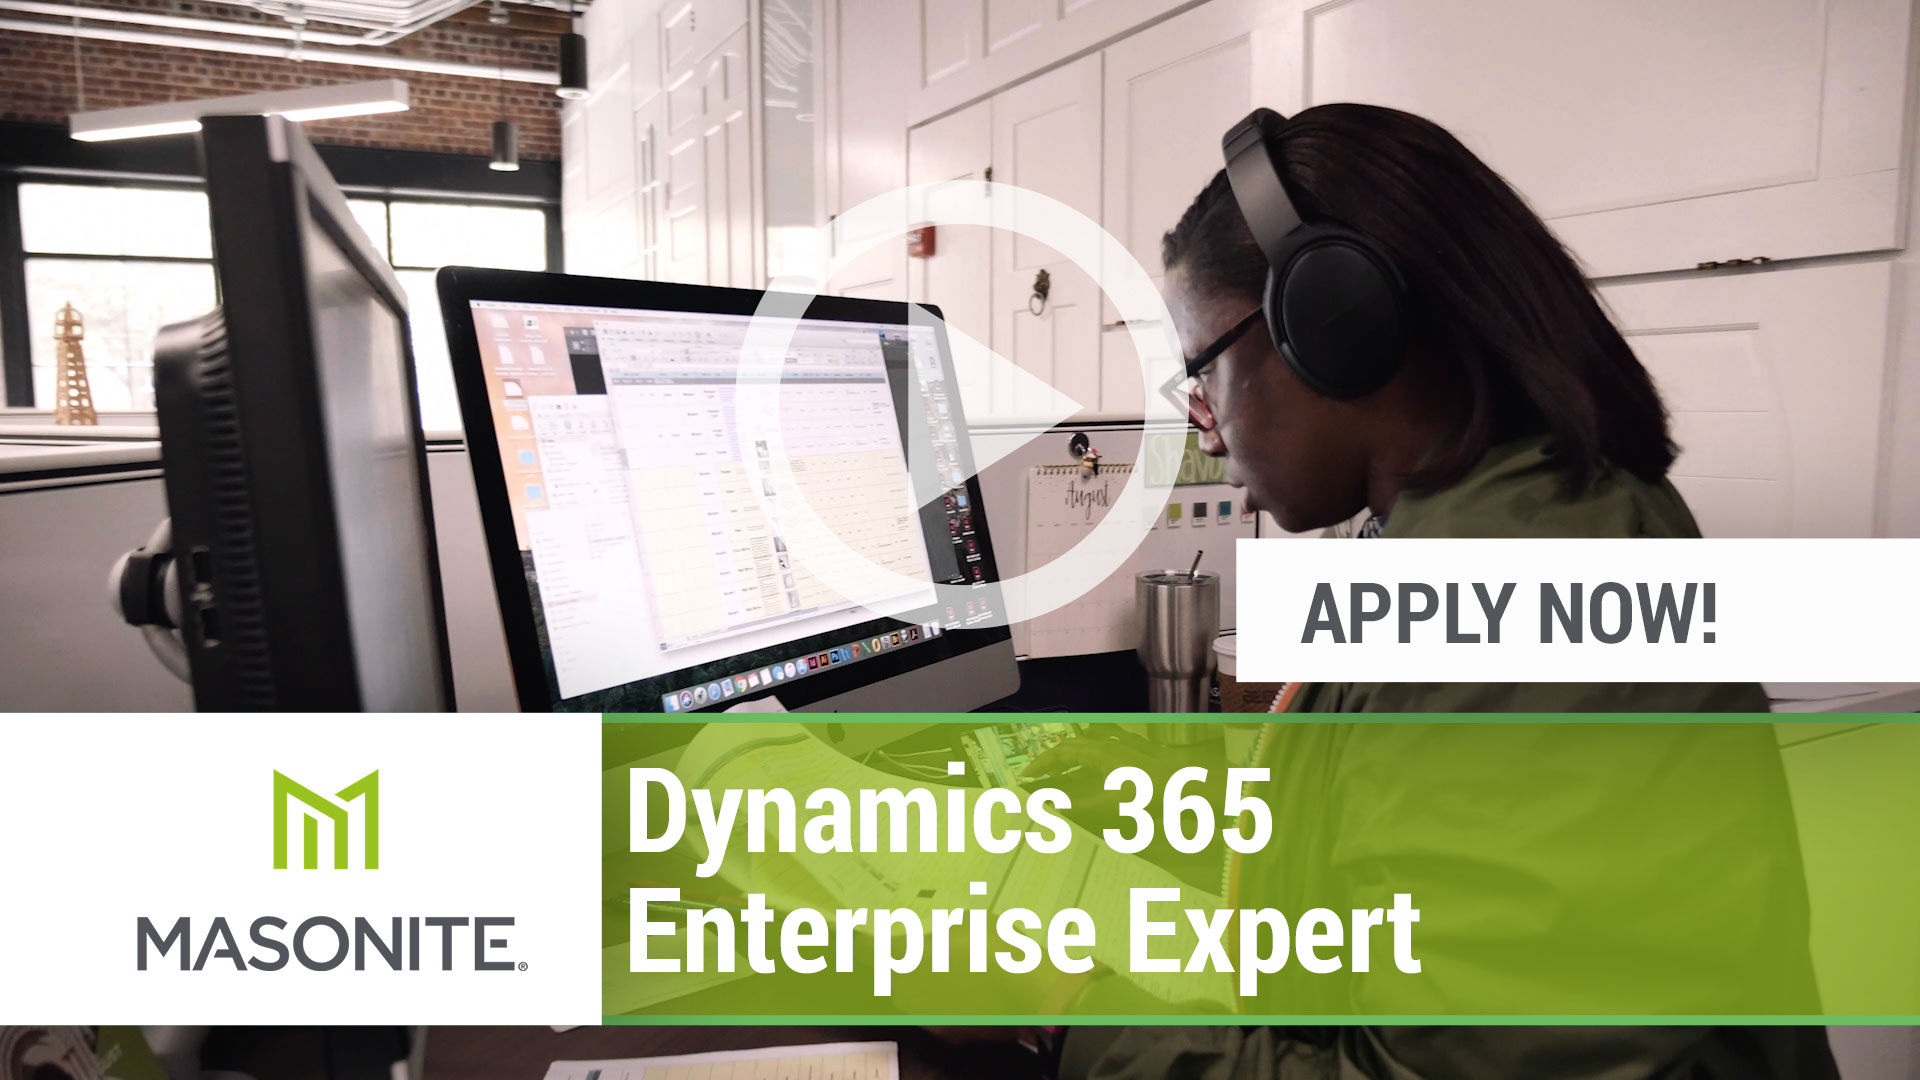 Watch our careers video for available job opening Dynamics 365 Enterprise Expert in Tampa, FL.  USA